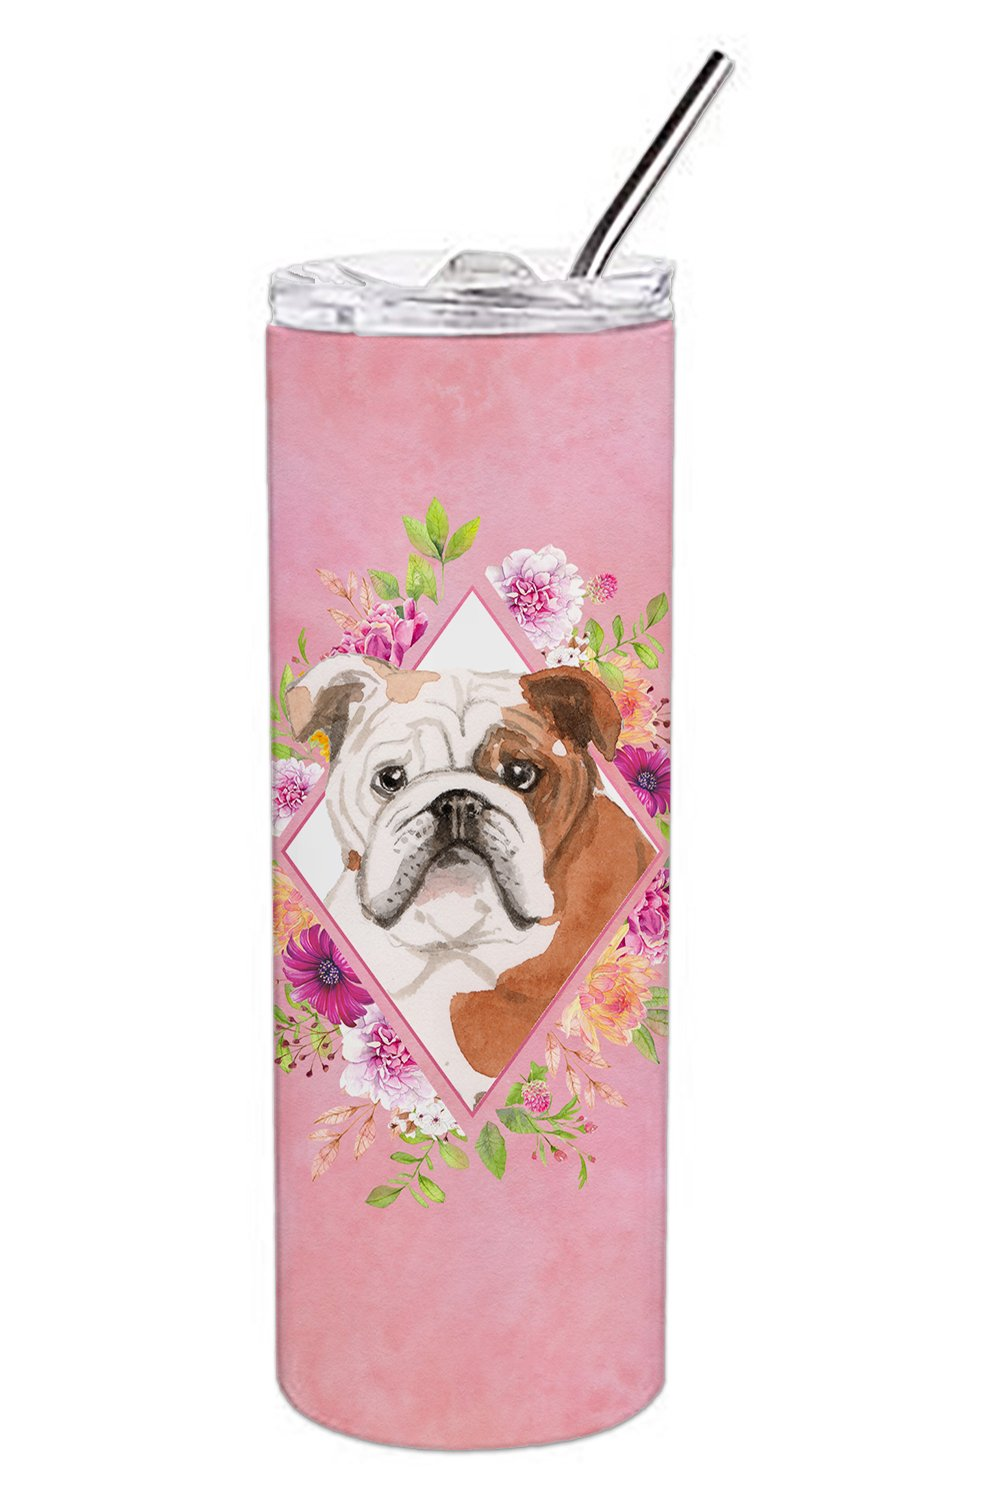 English Bulldog Pink Flowers Double Walled Stainless Steel 20 oz Skinny Tumbler CK4240TBL20 by Caroline's Treasures